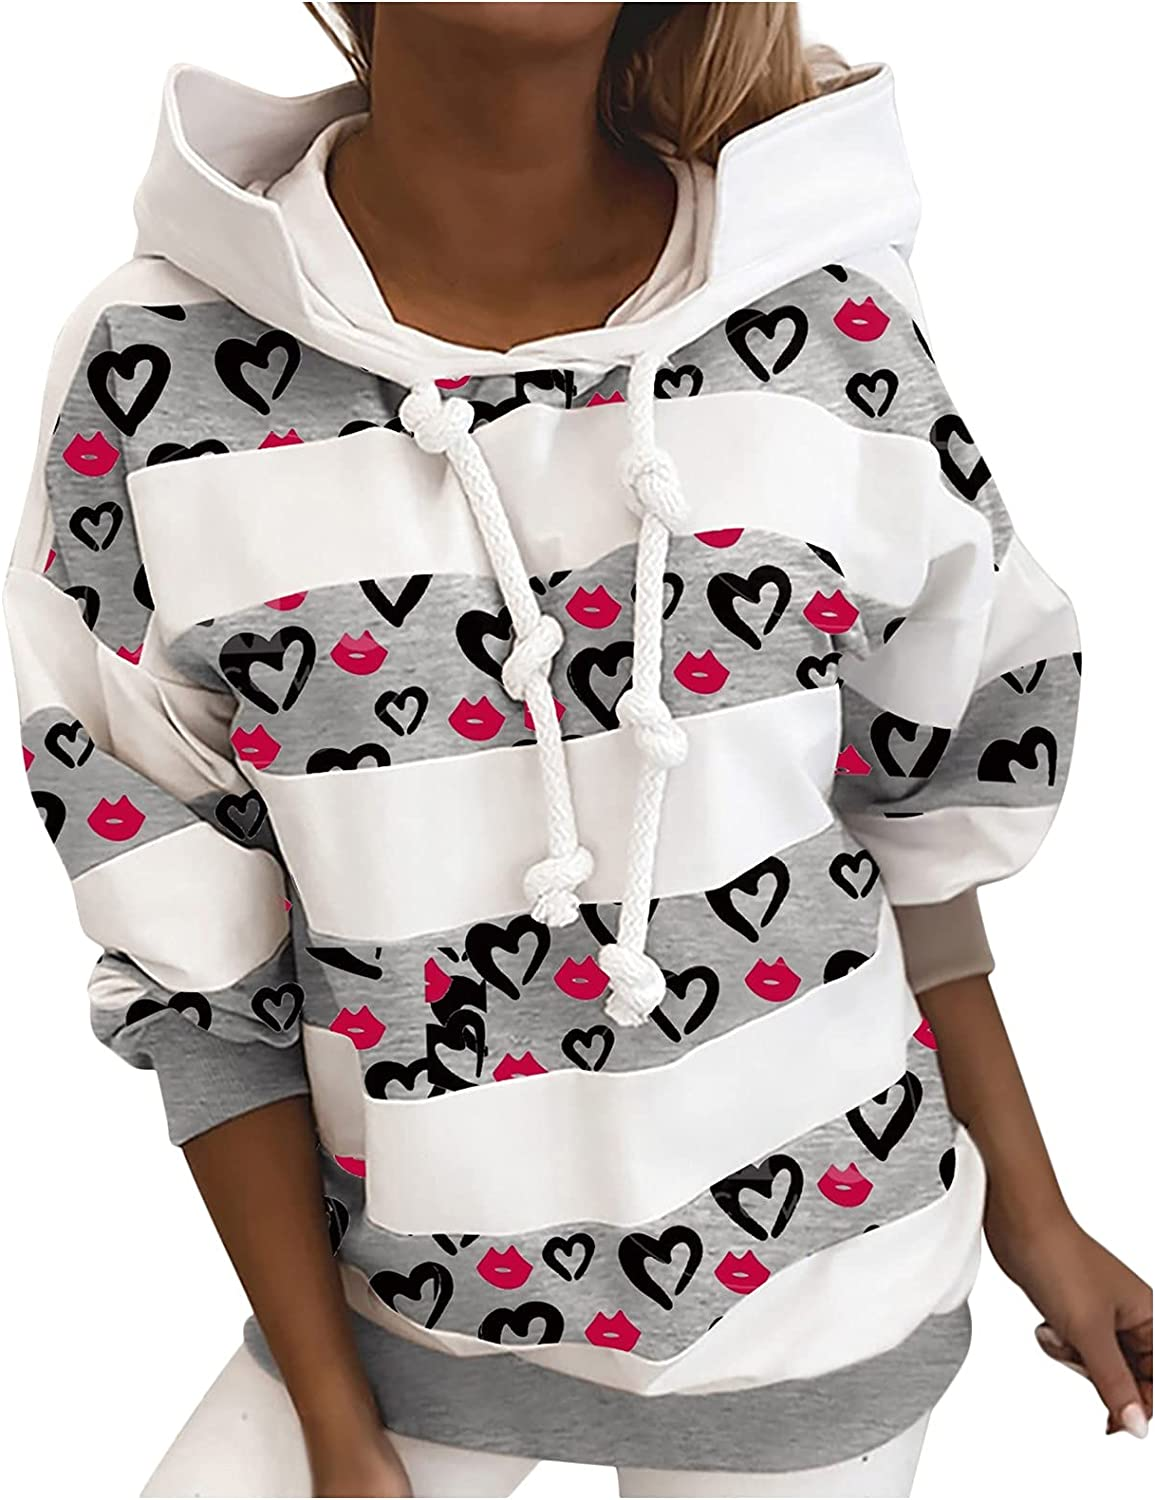 Sweatshirt for Women Womens Tops discount High material Fashion Heart-S Pullover Hooded